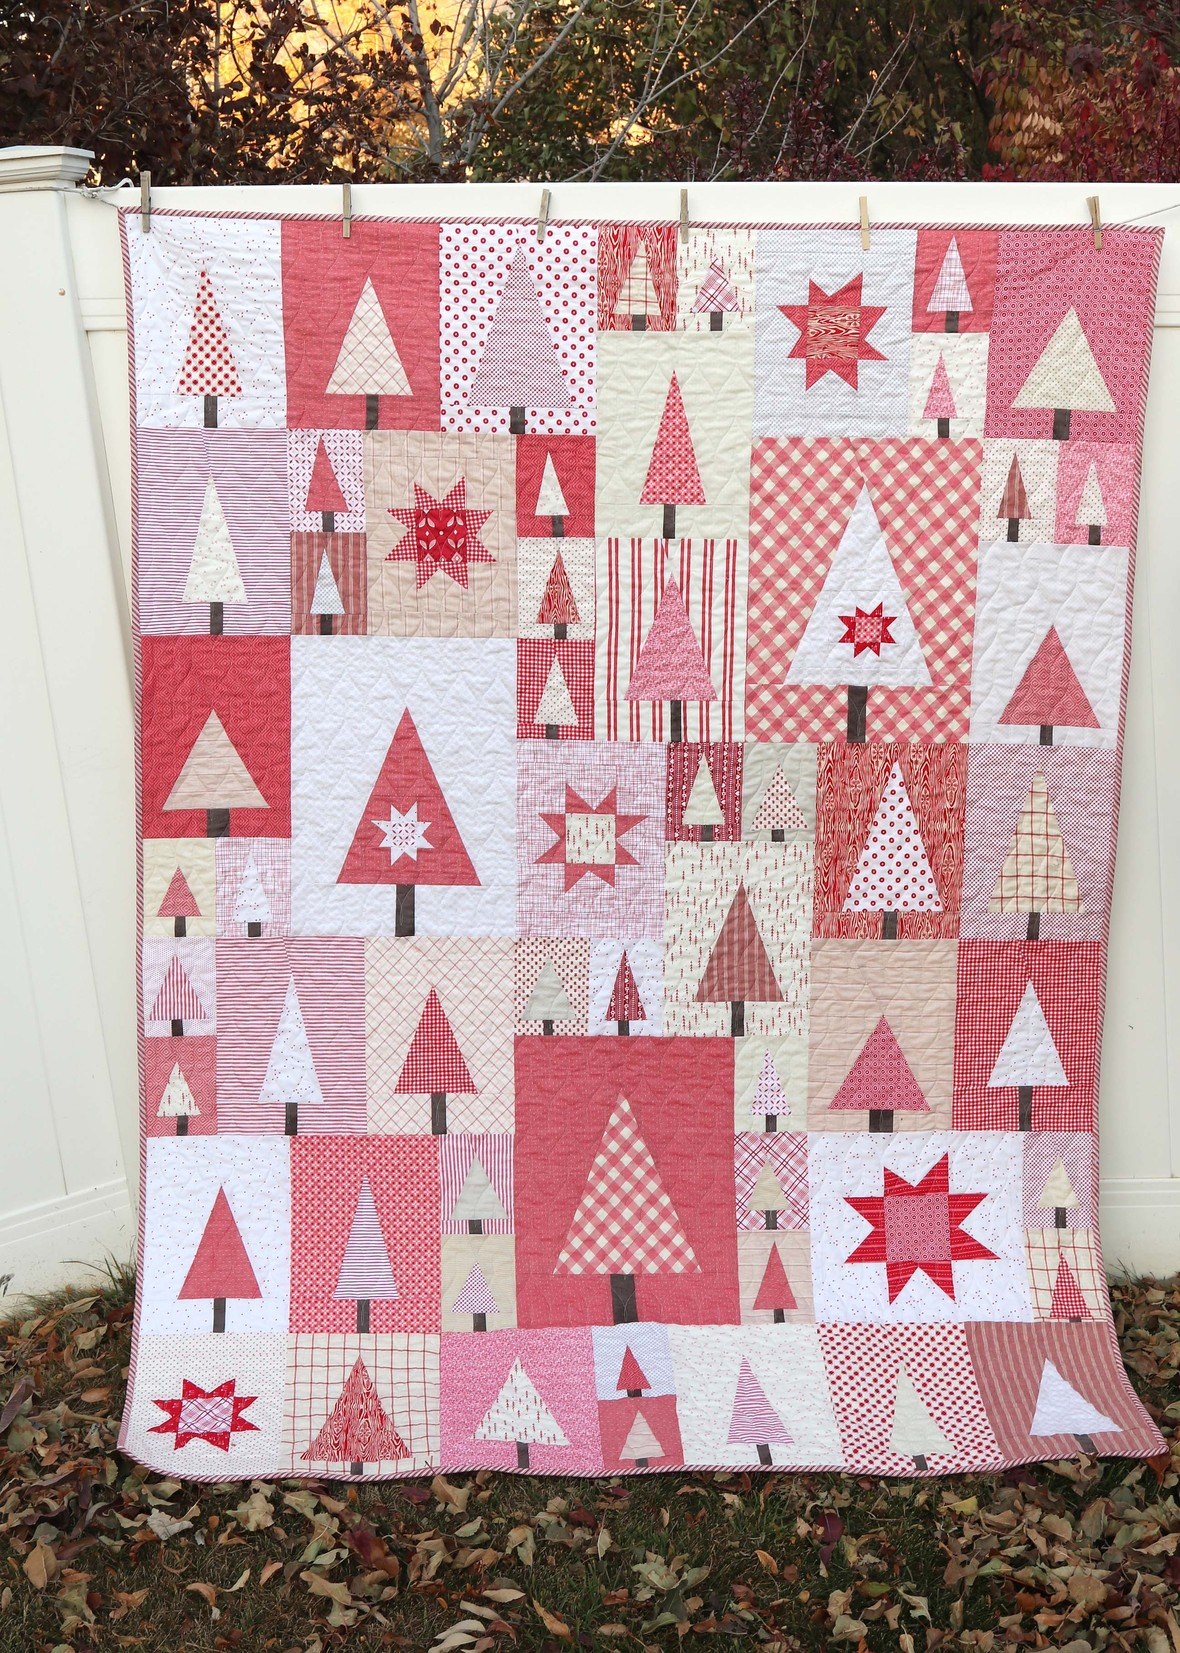 28 Of My Favorite Christmas Quilts Charity Sewing Idea